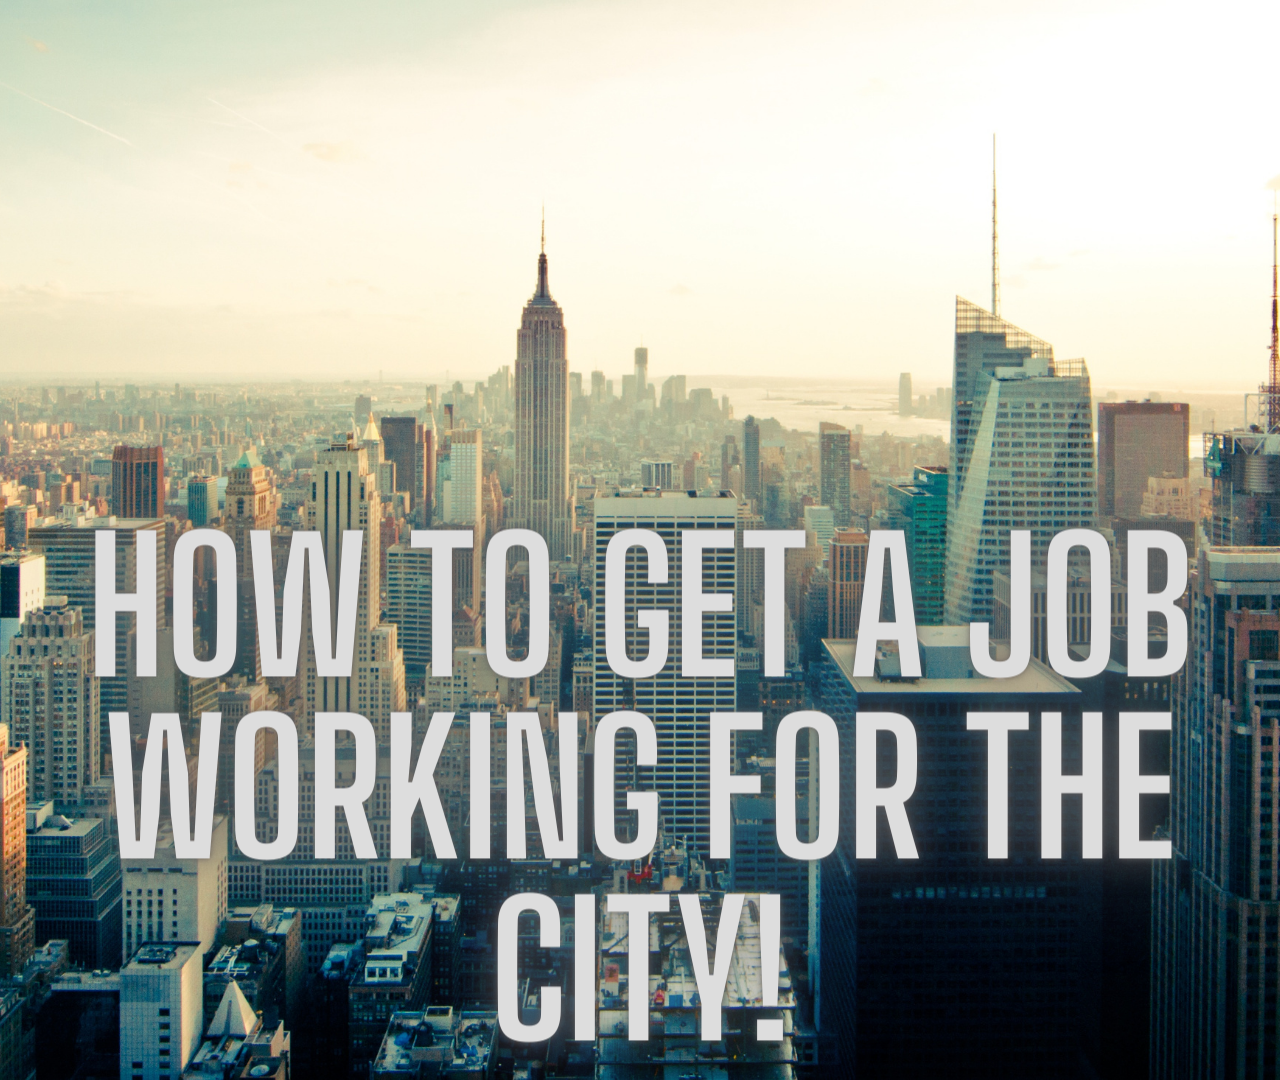 getting a city job, how to get a city job, job working for the city, city gov jobs, getting a civil service job